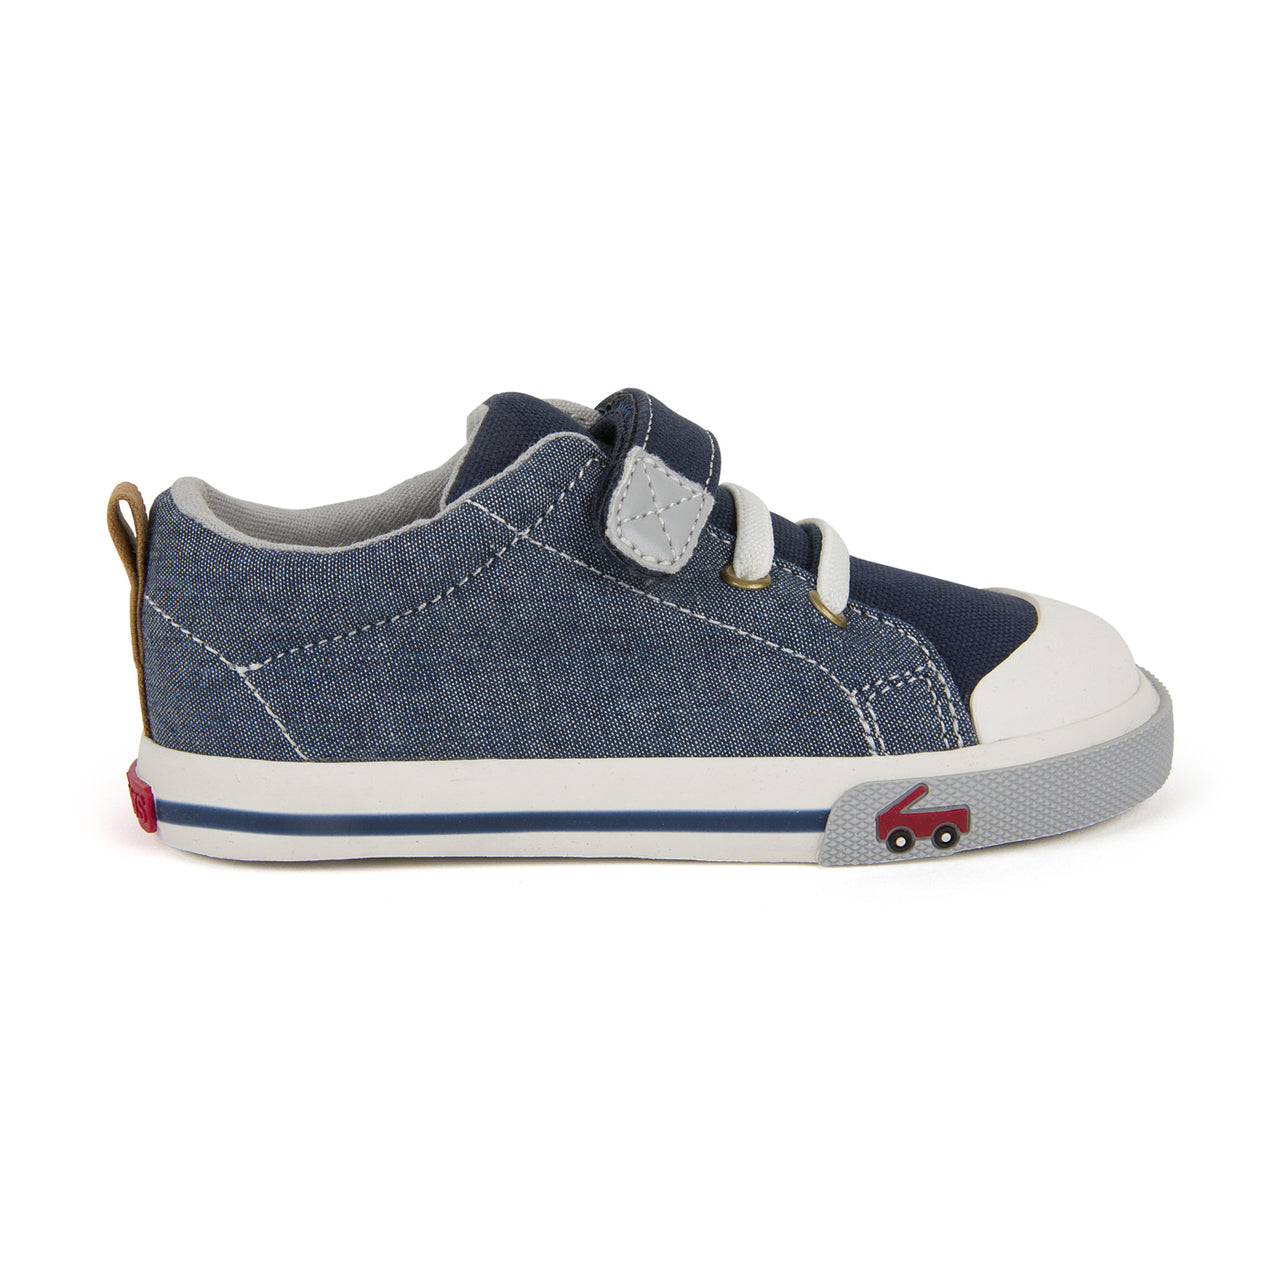 Stevie II - Chambray by See Kai Run - Ponseti's Shoes